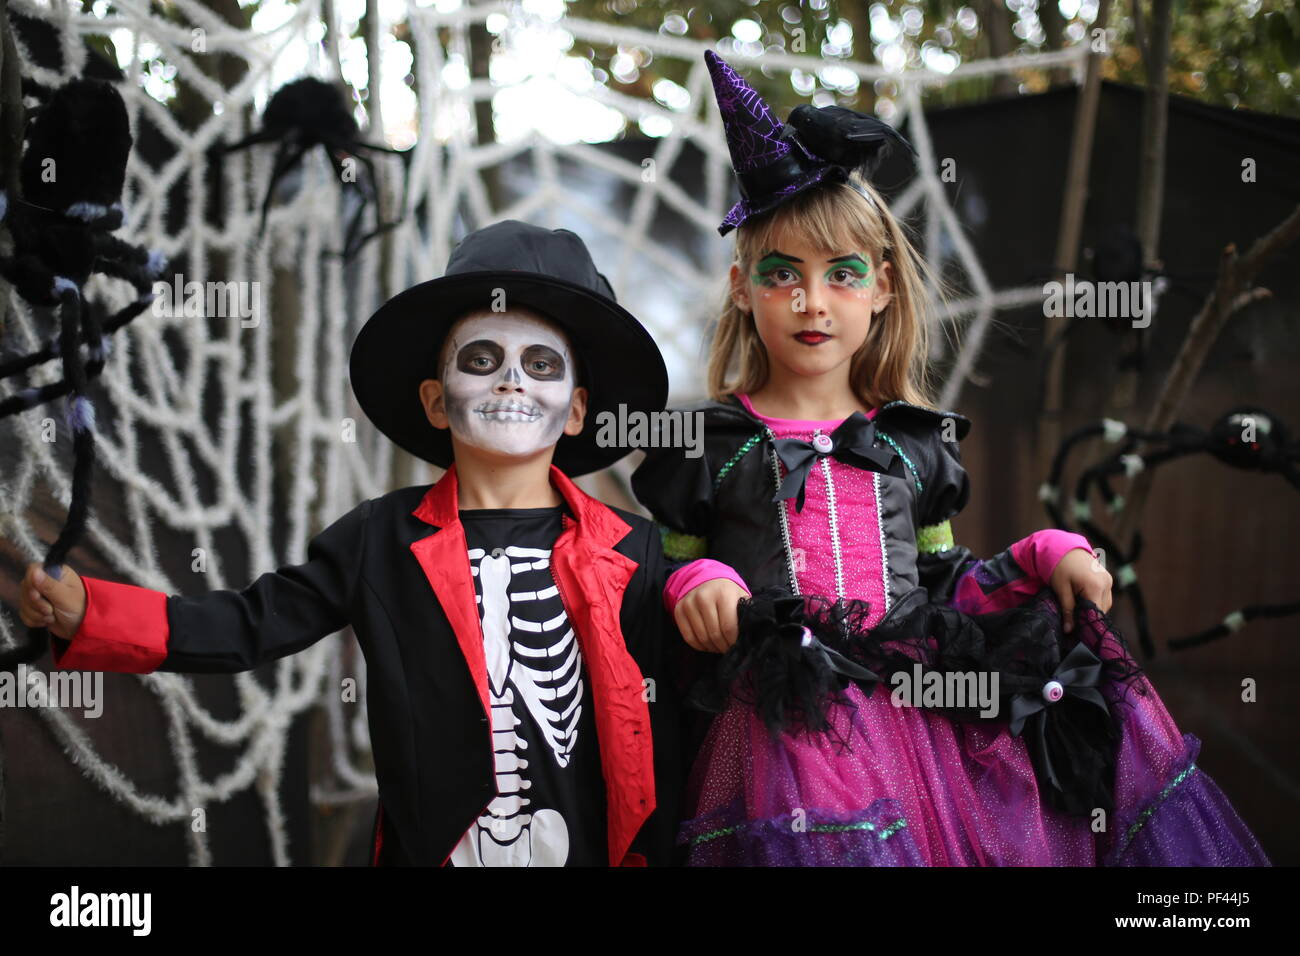 Halloween kids, Trick-or-treat. Les enfants porte costume de sorcière et squelette pour Halloween party Photo Stock